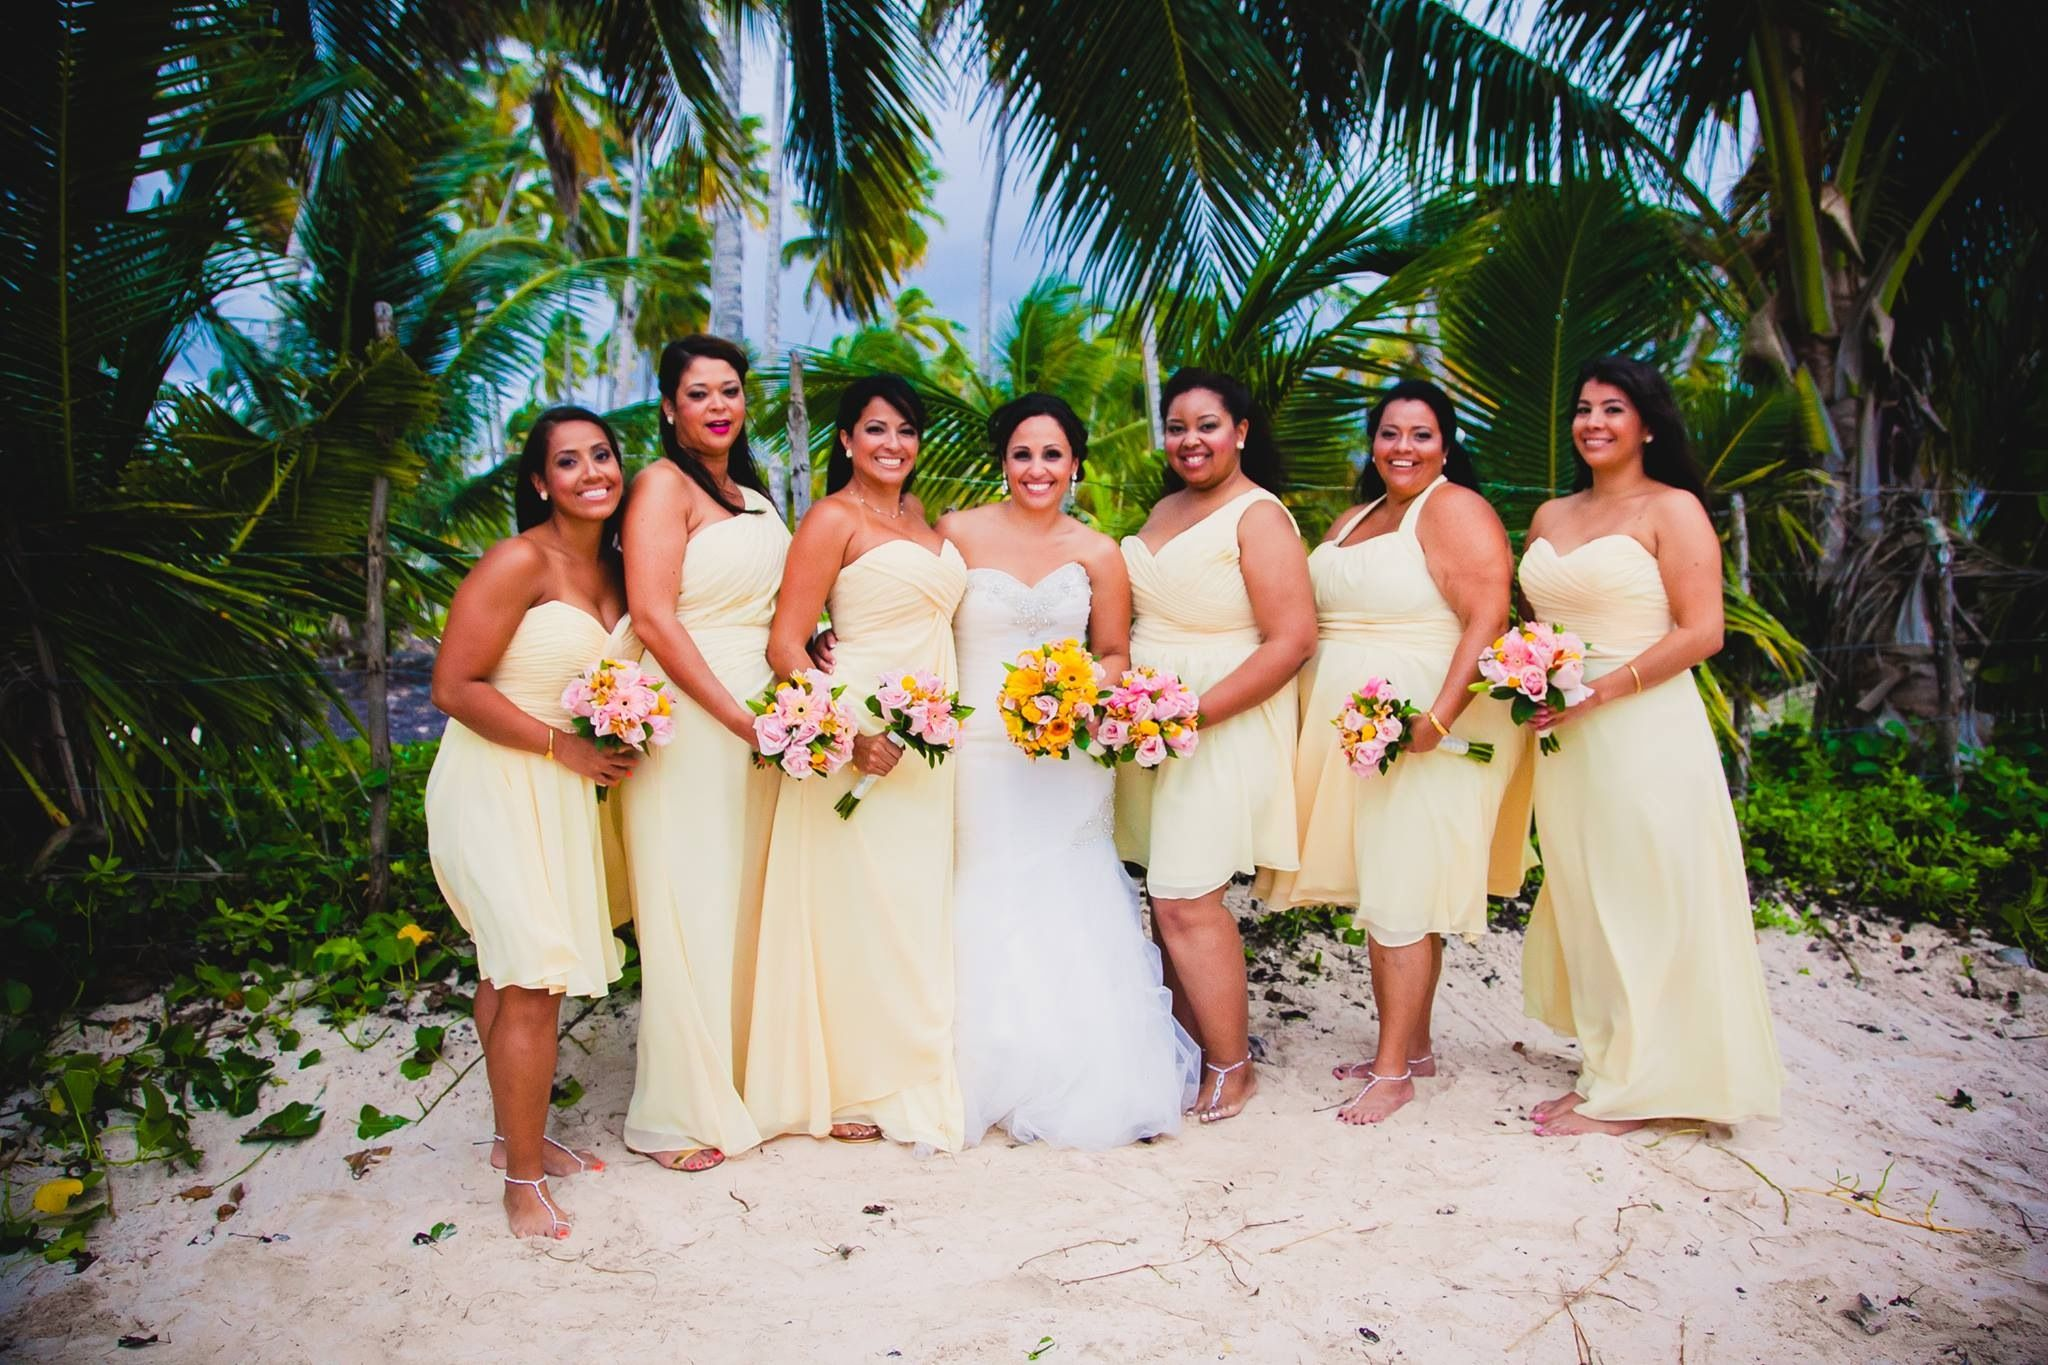 Dominican bride is body language